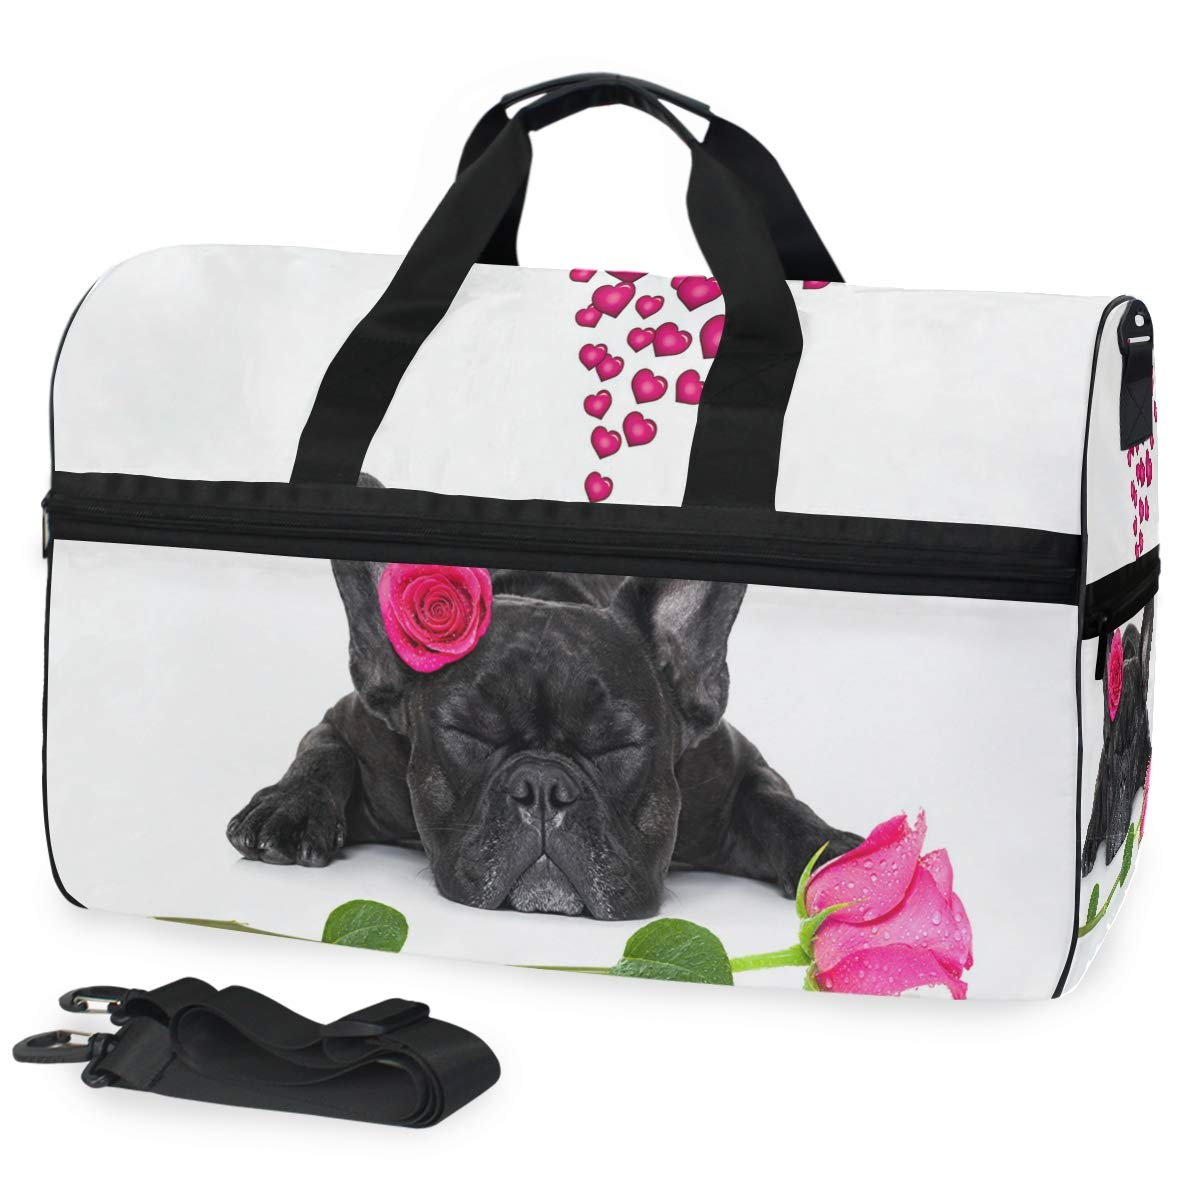 YueLJB Cool Bulldog Glasses Lightweight Large Capacity Portable Luggage Bag Travel Duffel Bag Storage Carry Luggage Duffle Tote Bag